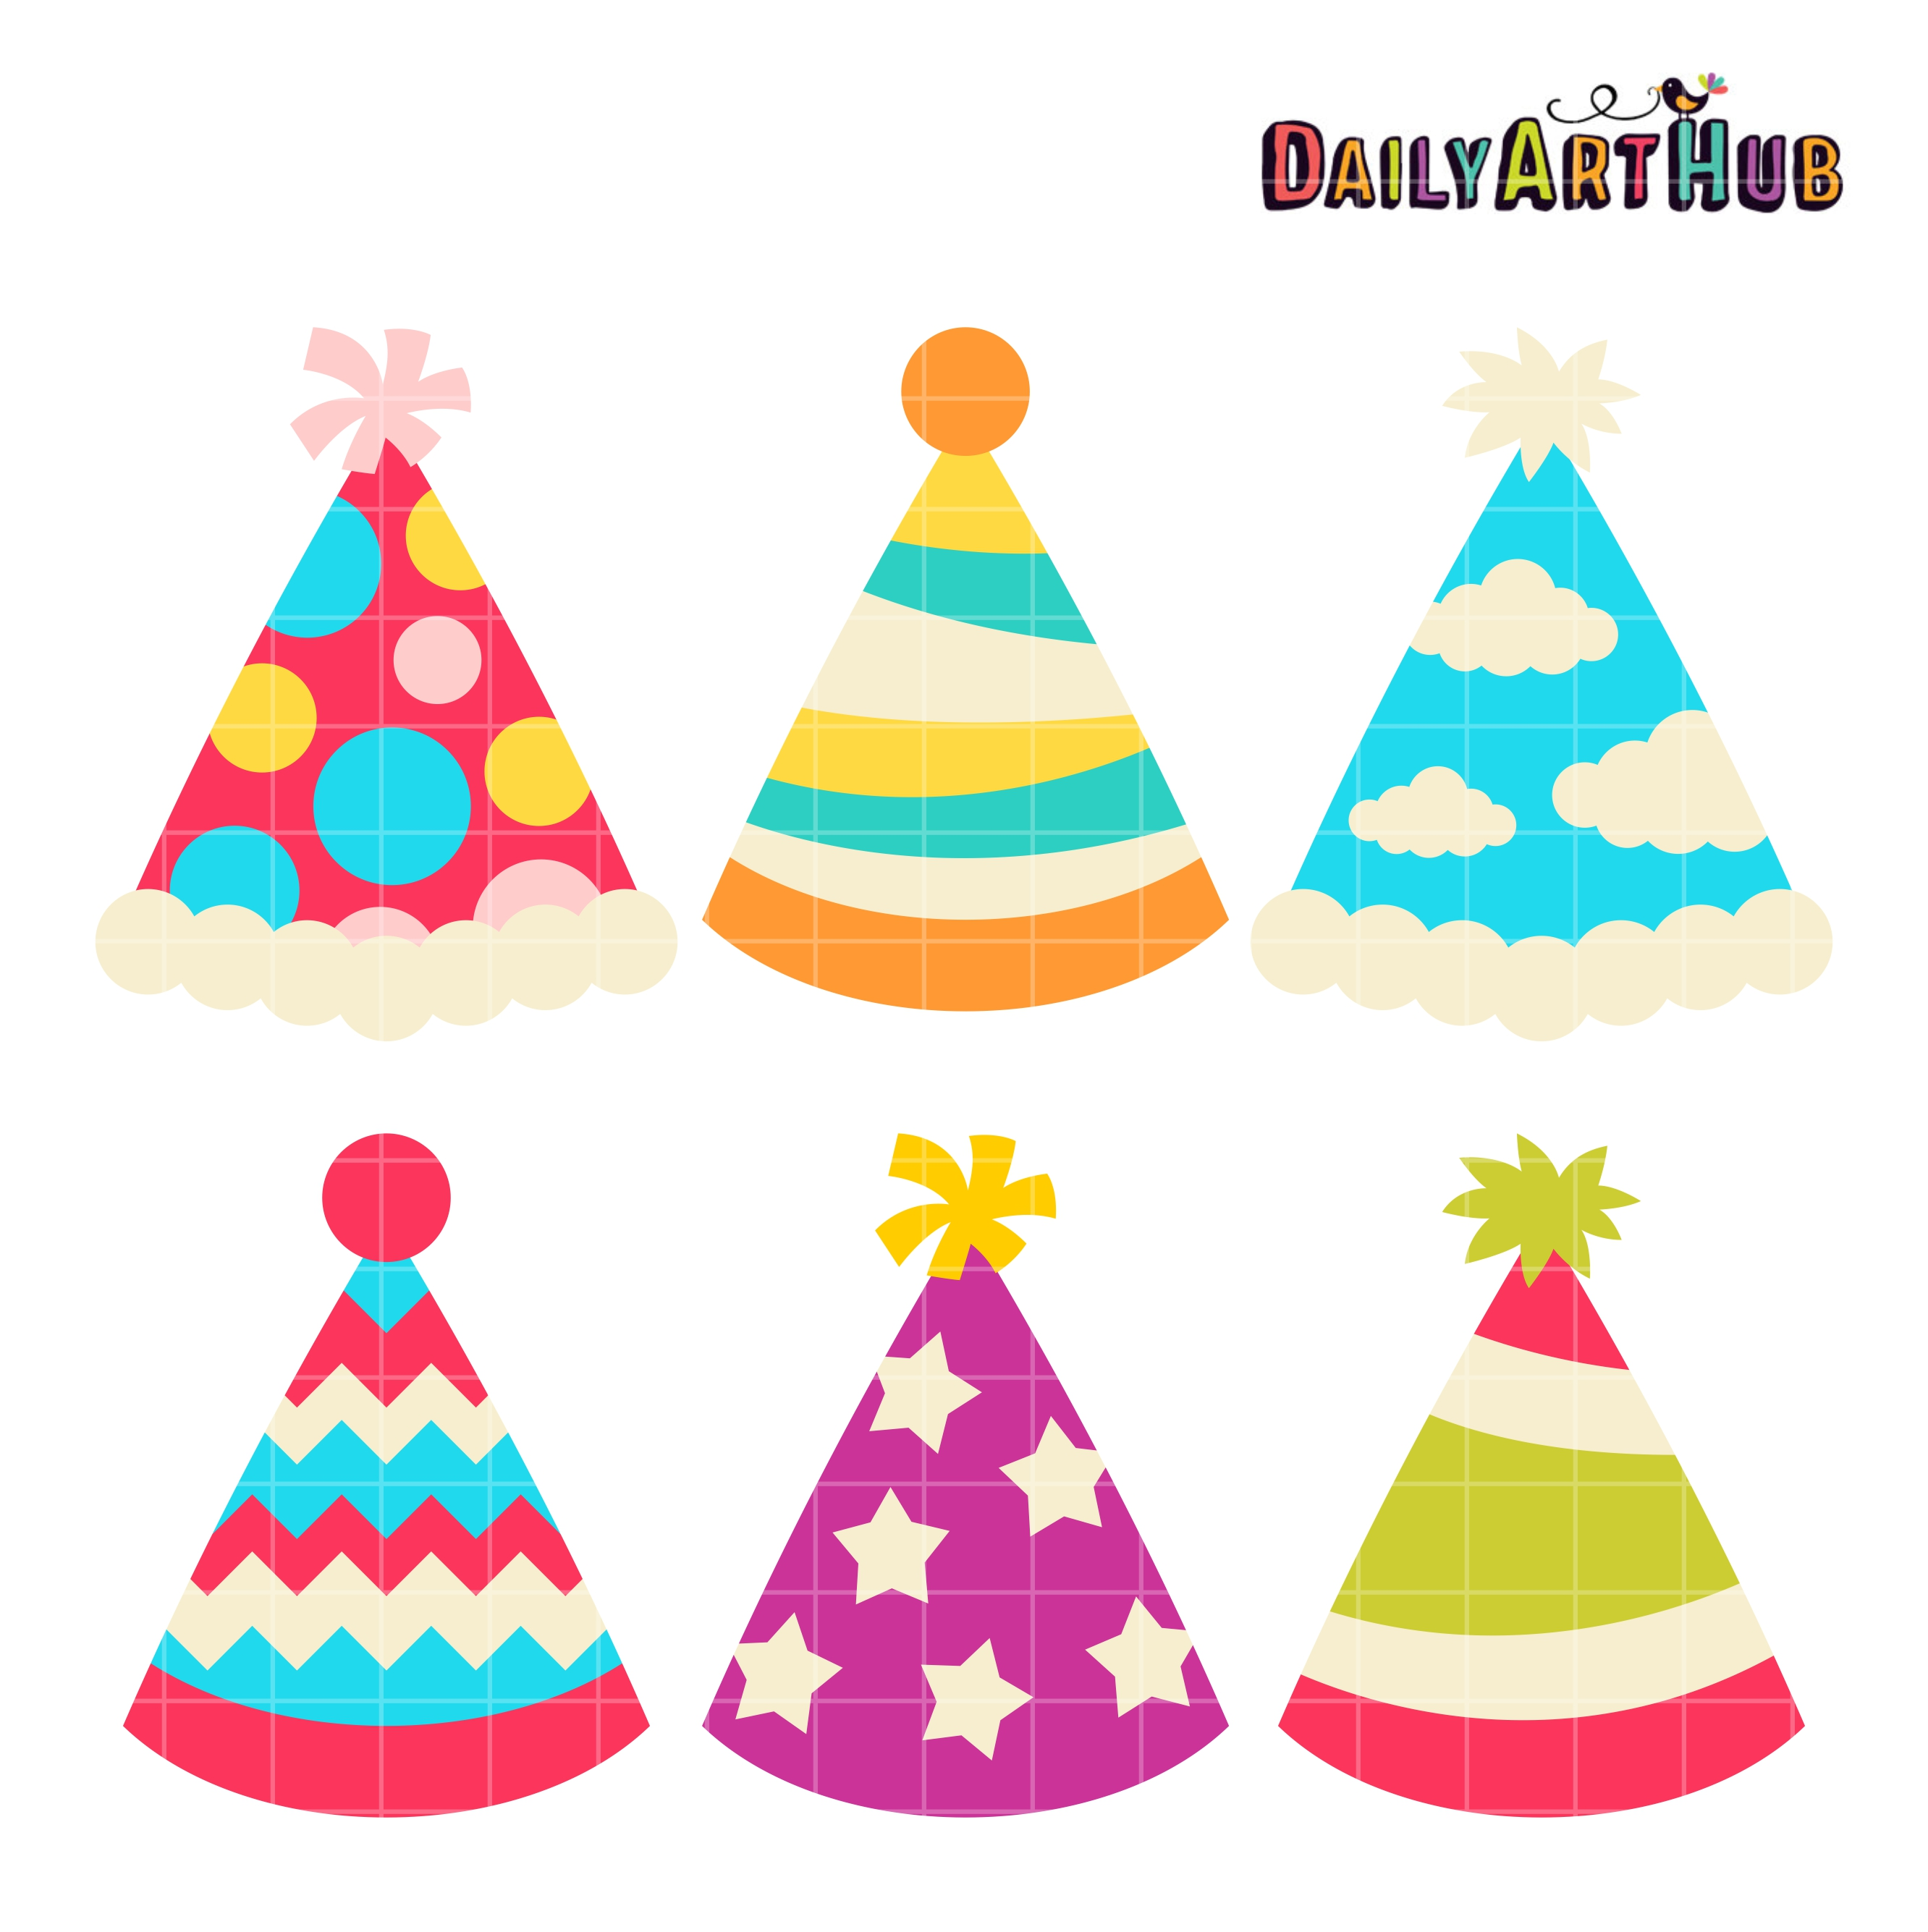 party hats clip art set daily art hub free clip art everyday rh dailyarthub com party hat clip art images party hat clipart png